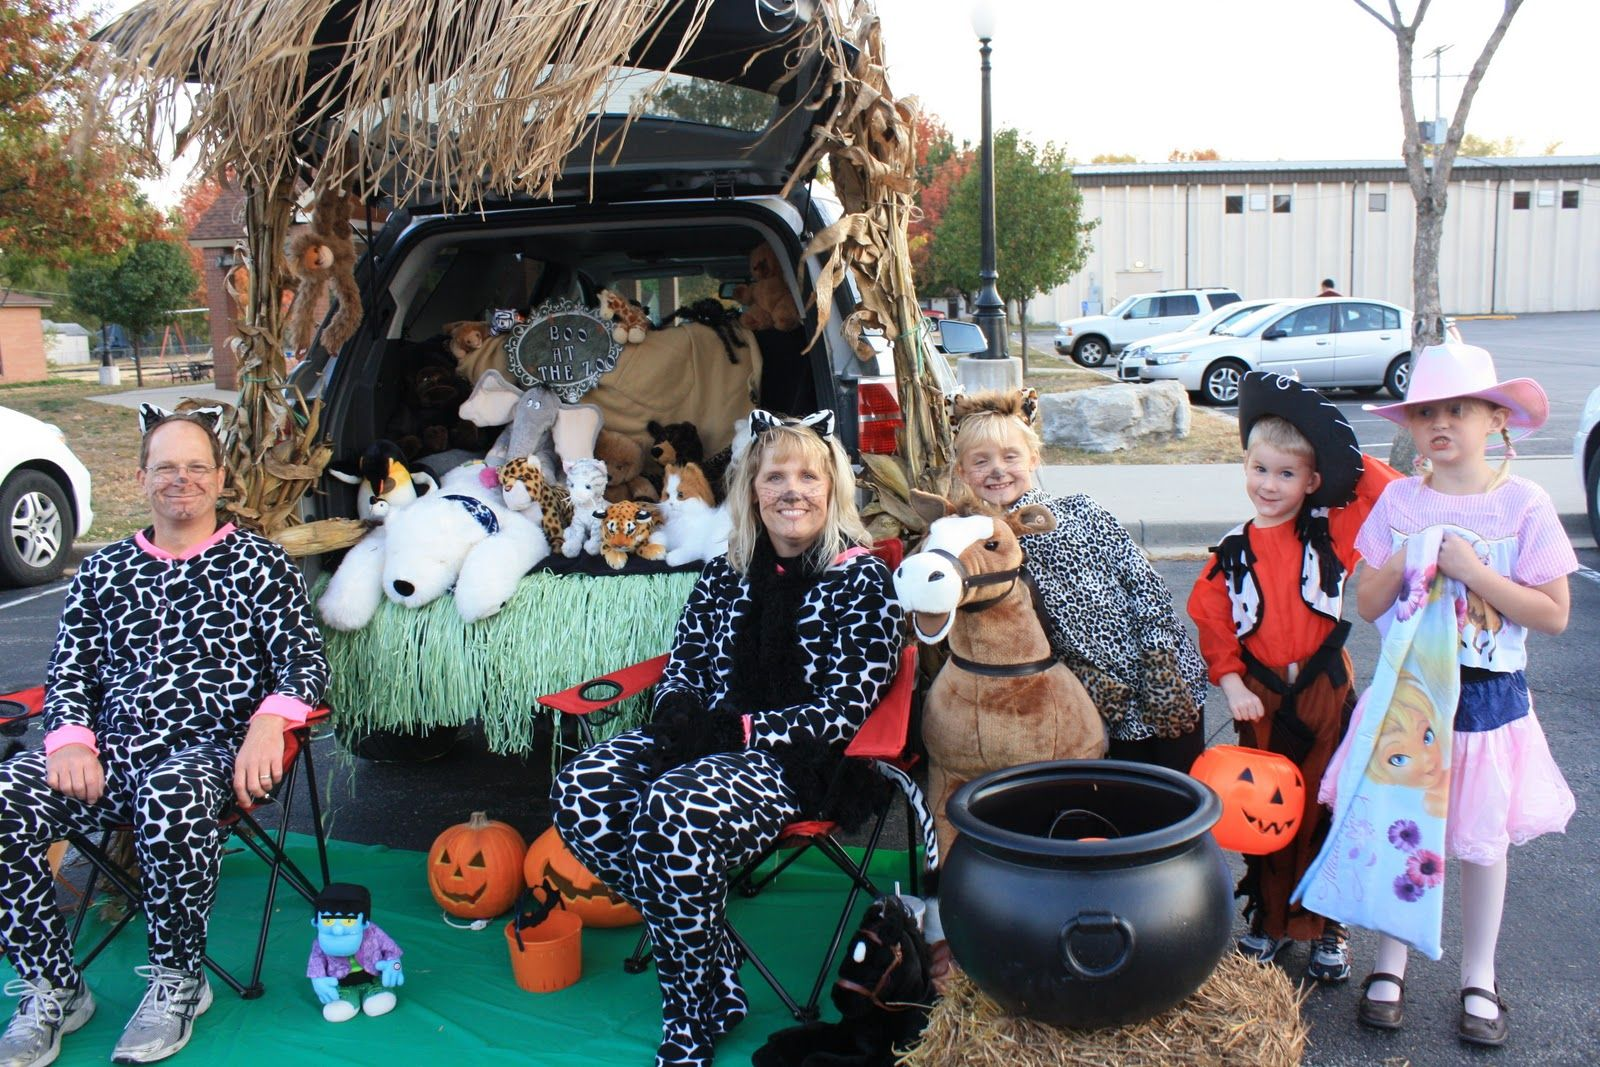 Christian trunk or treat themes - Google Search